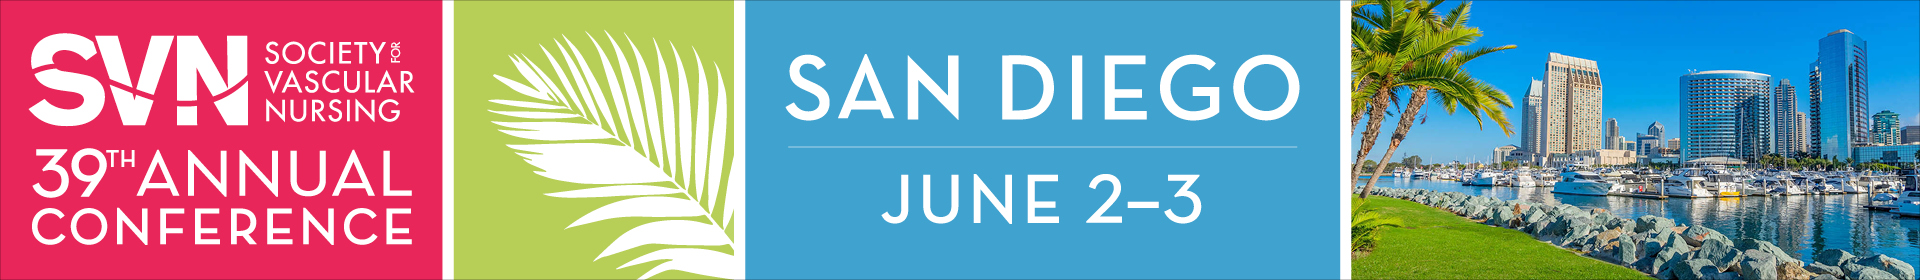 Society for Vascular Nursing 2021 Annual Conference  Event Banner